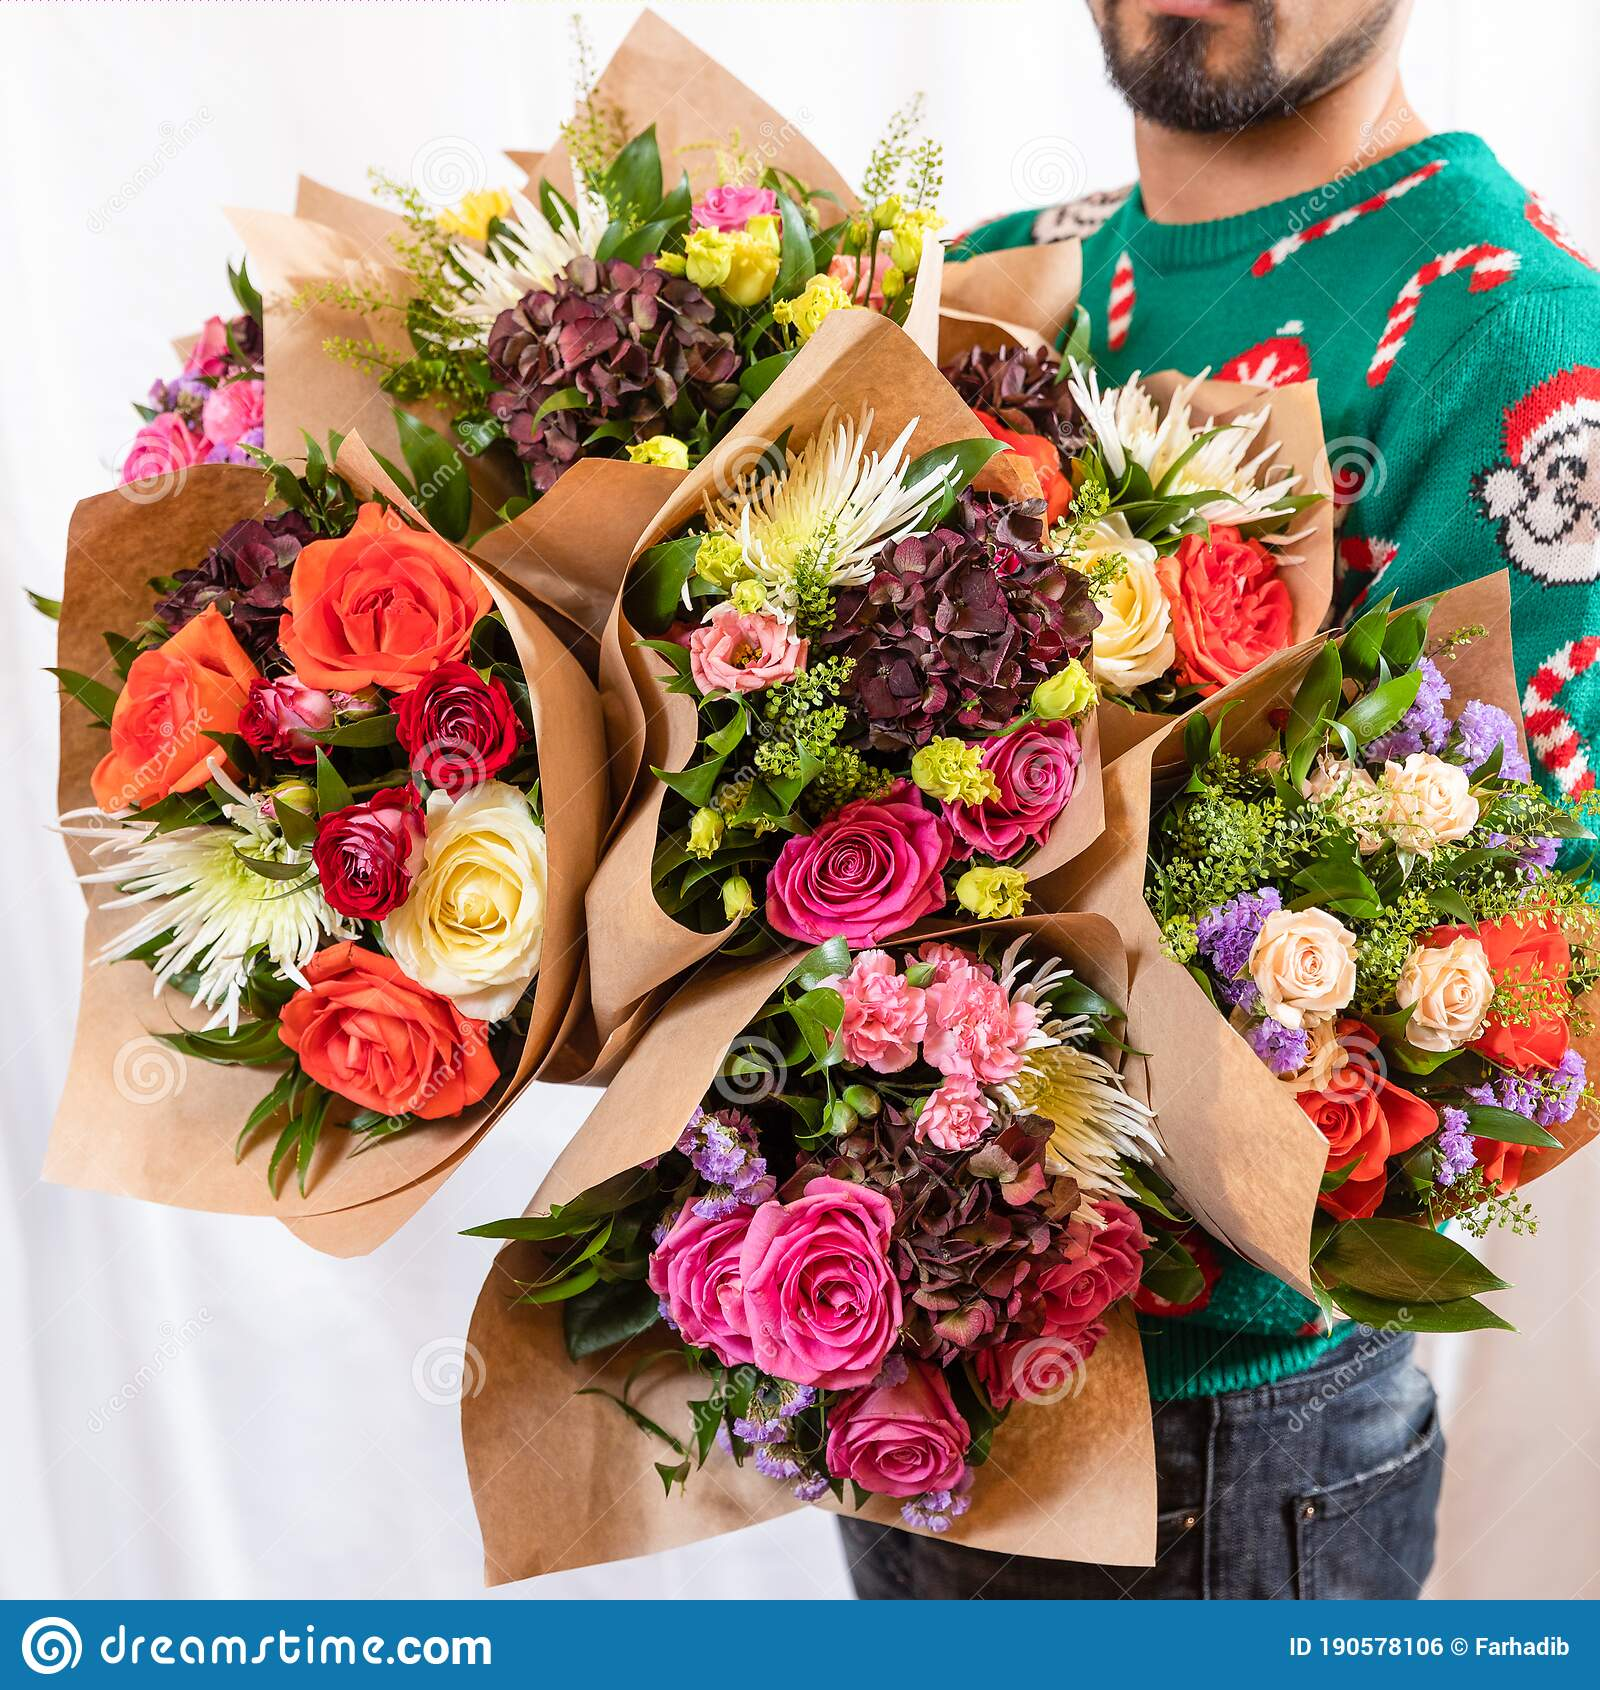 Florist Holding Beautiful Flower Bouquets Stock Photo Image Of Flower Decor 190578106